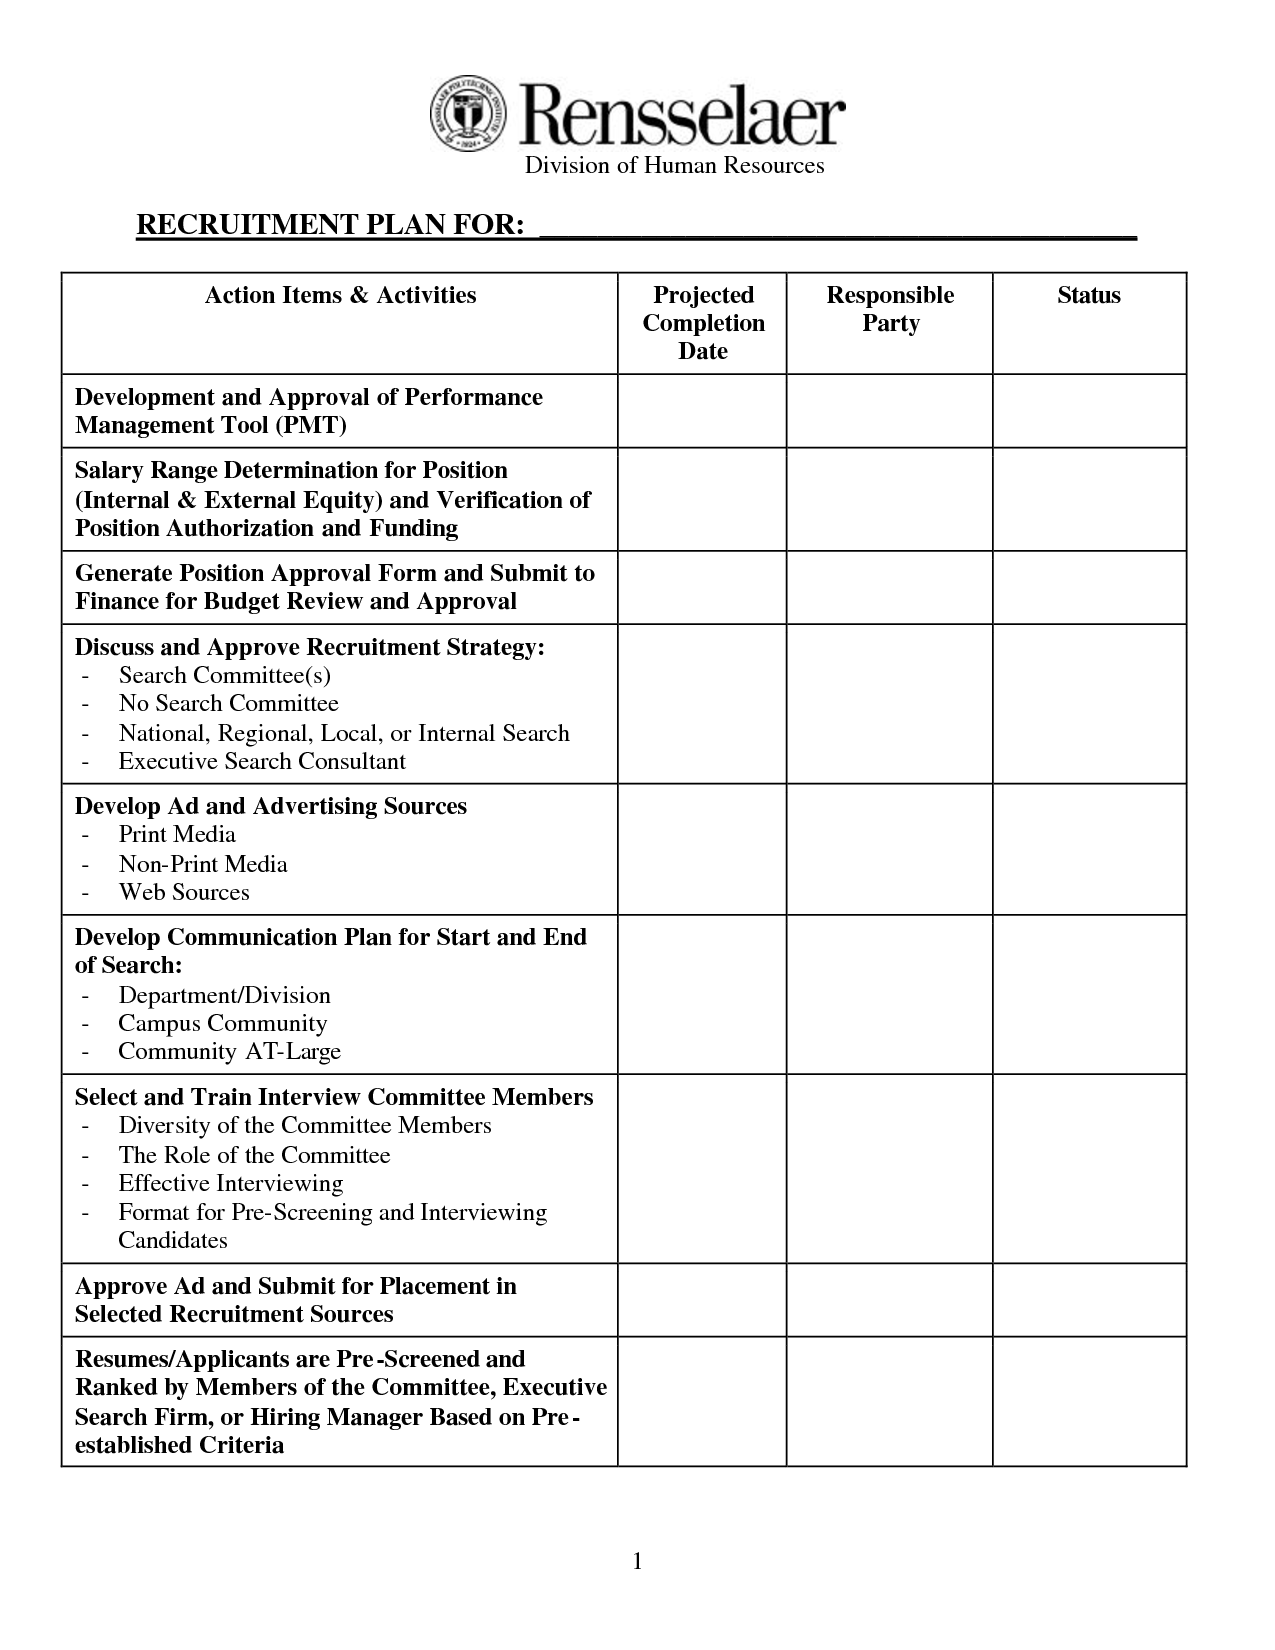 Recruitment Forms And Templates  Recruiter Forms